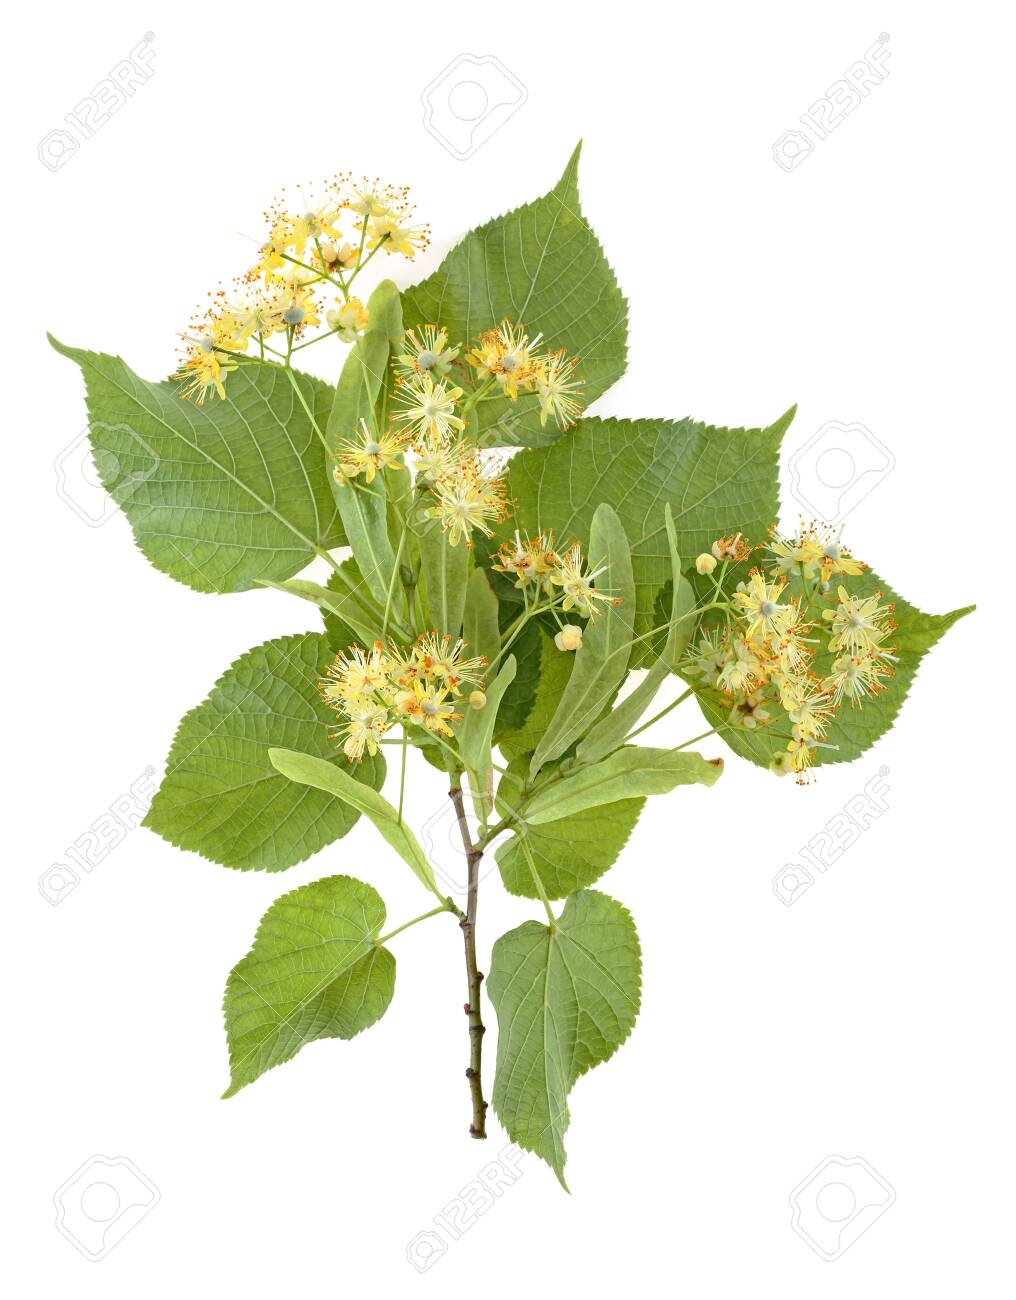 Flowers and leaves of linden isolated on a white background - 124554246